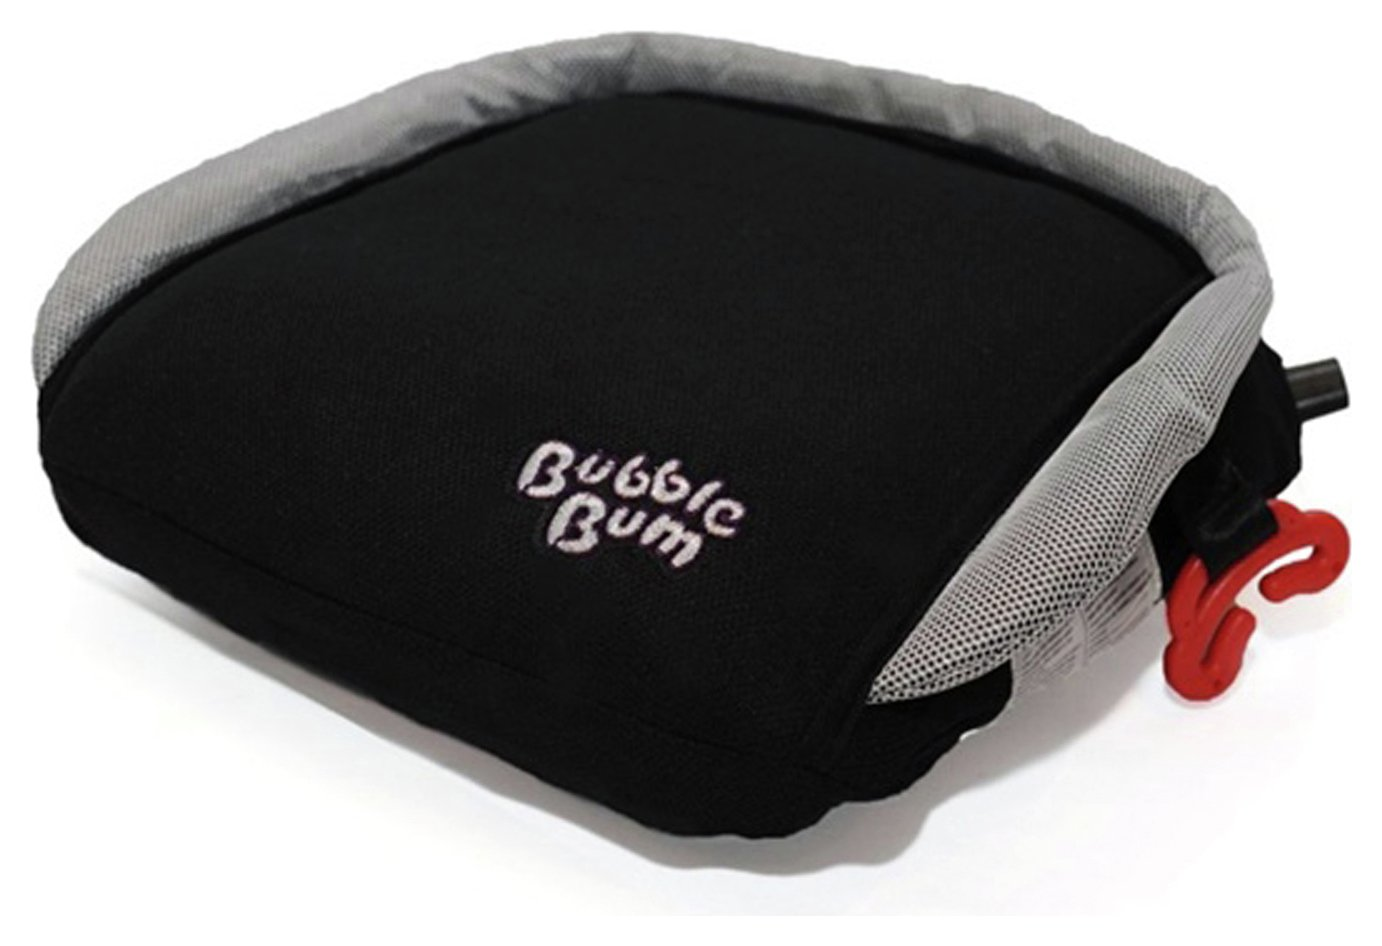 Image of BubbleBum Booster Seat - Black.